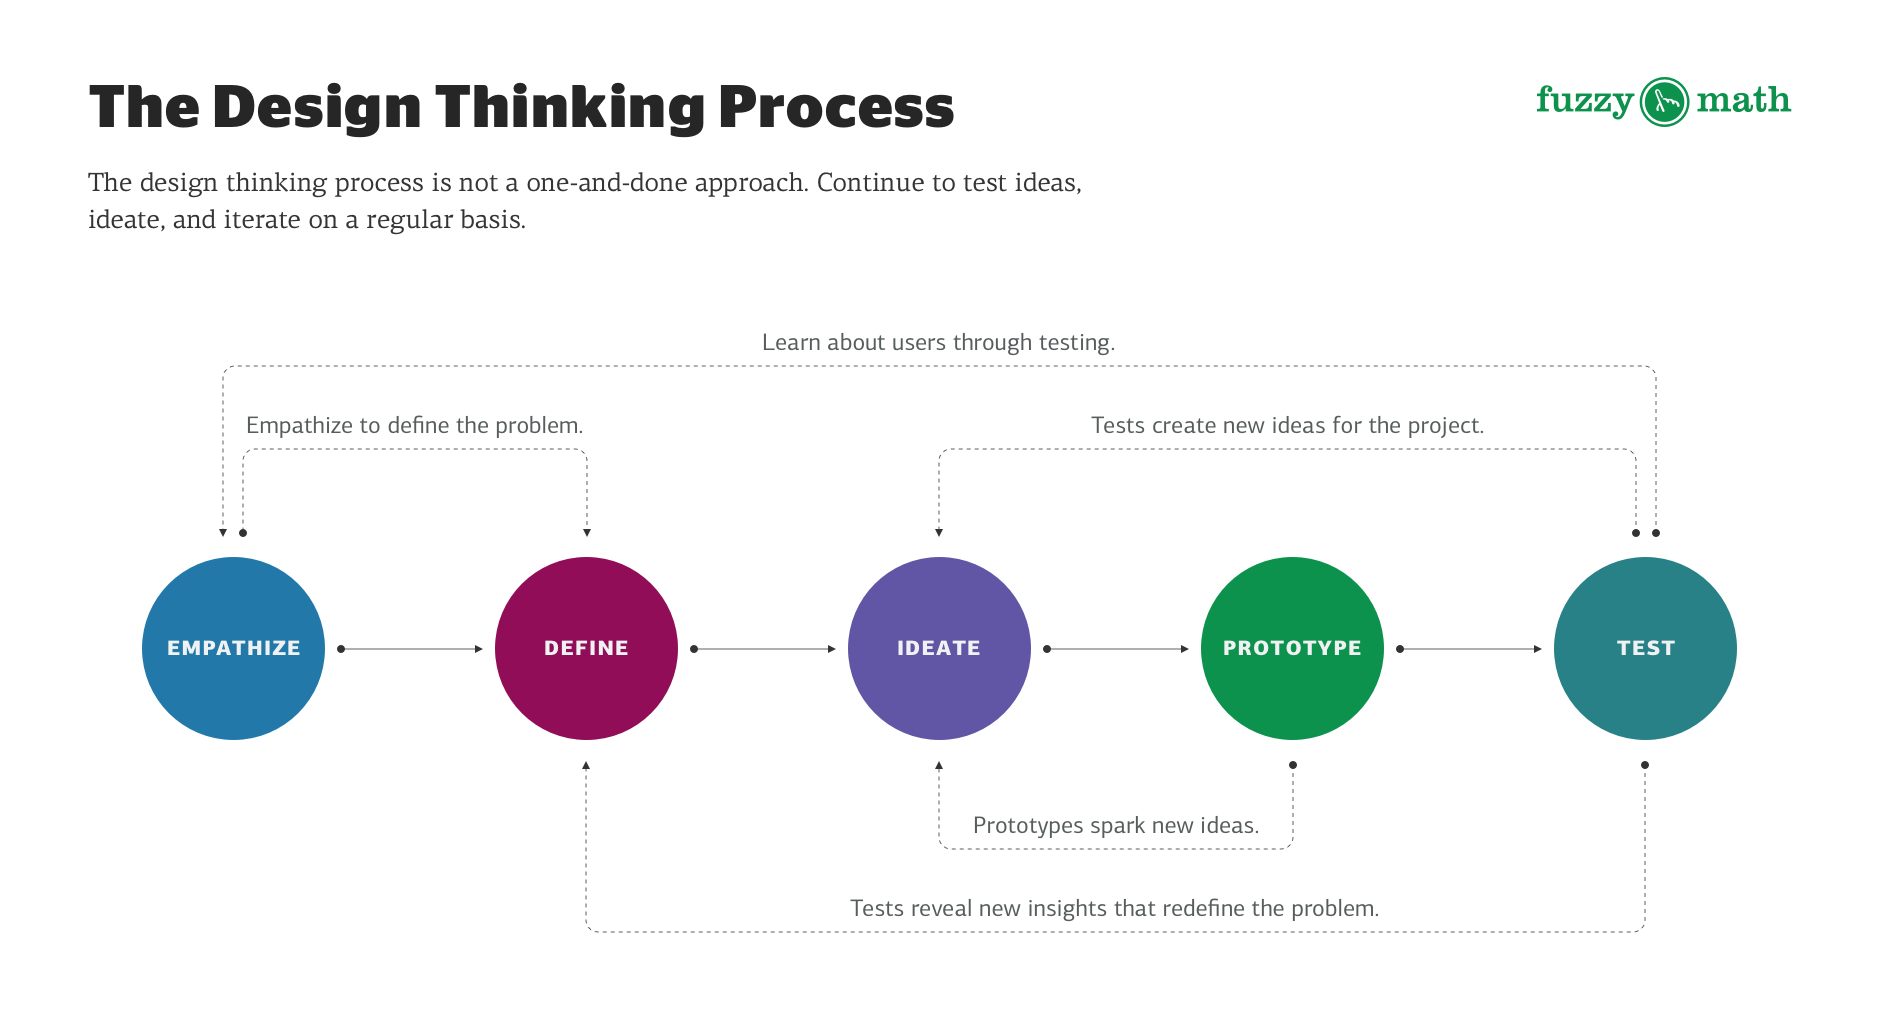 Getting-started-with-the-design-thinking-process